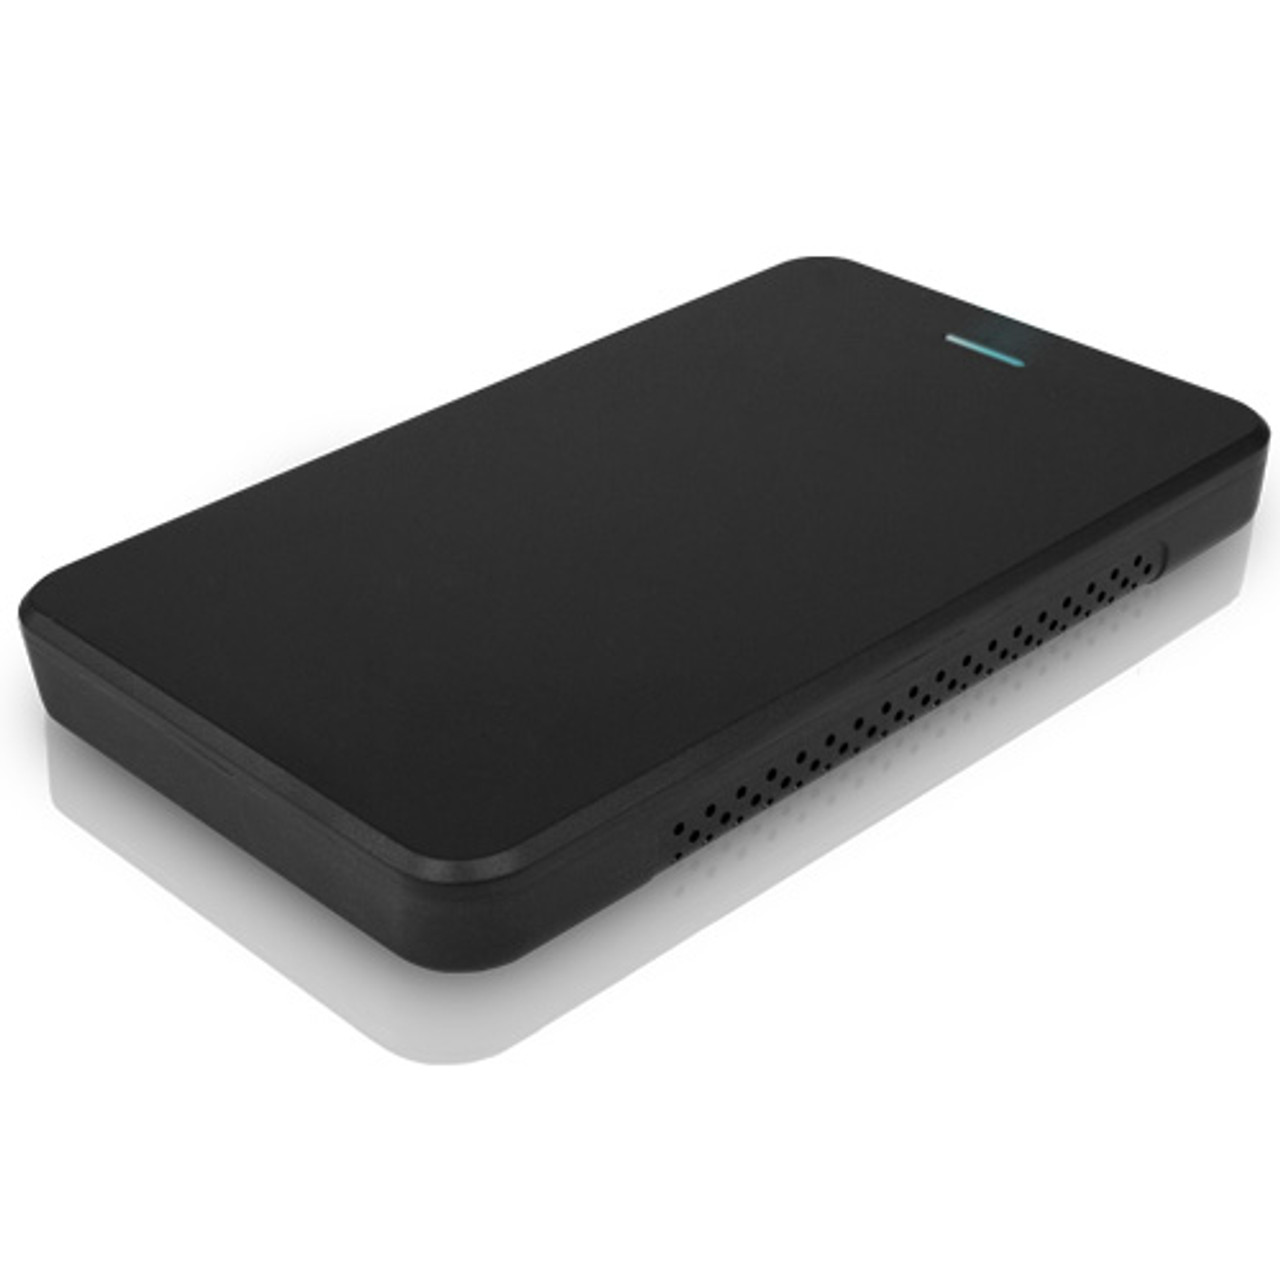 "OWC Express 2.5"" Drive Enclosure (USB 3.0 & 2.0) - Black"